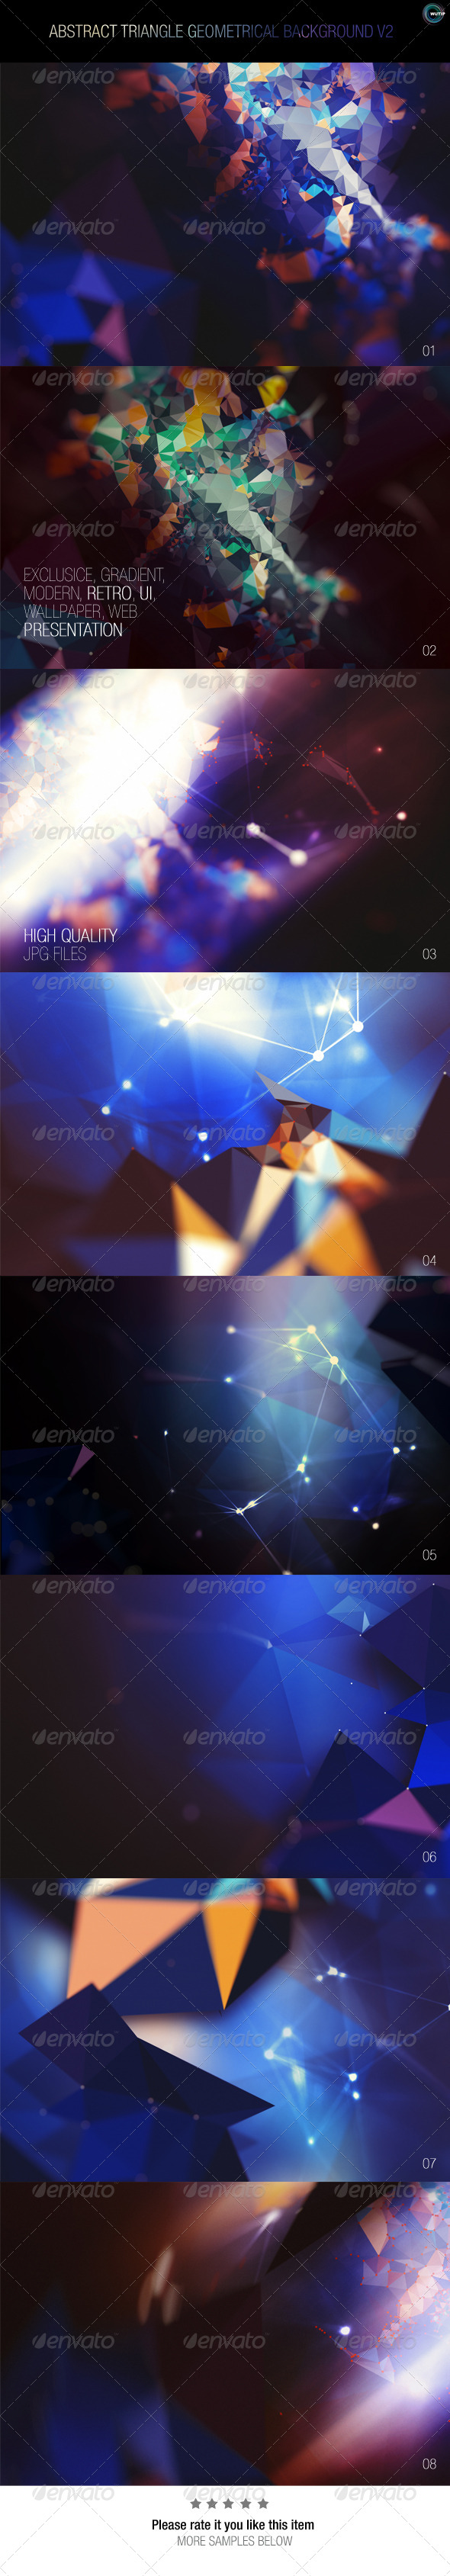 GraphicRiver Abstract Triangle Geometrical Background V2 7837539